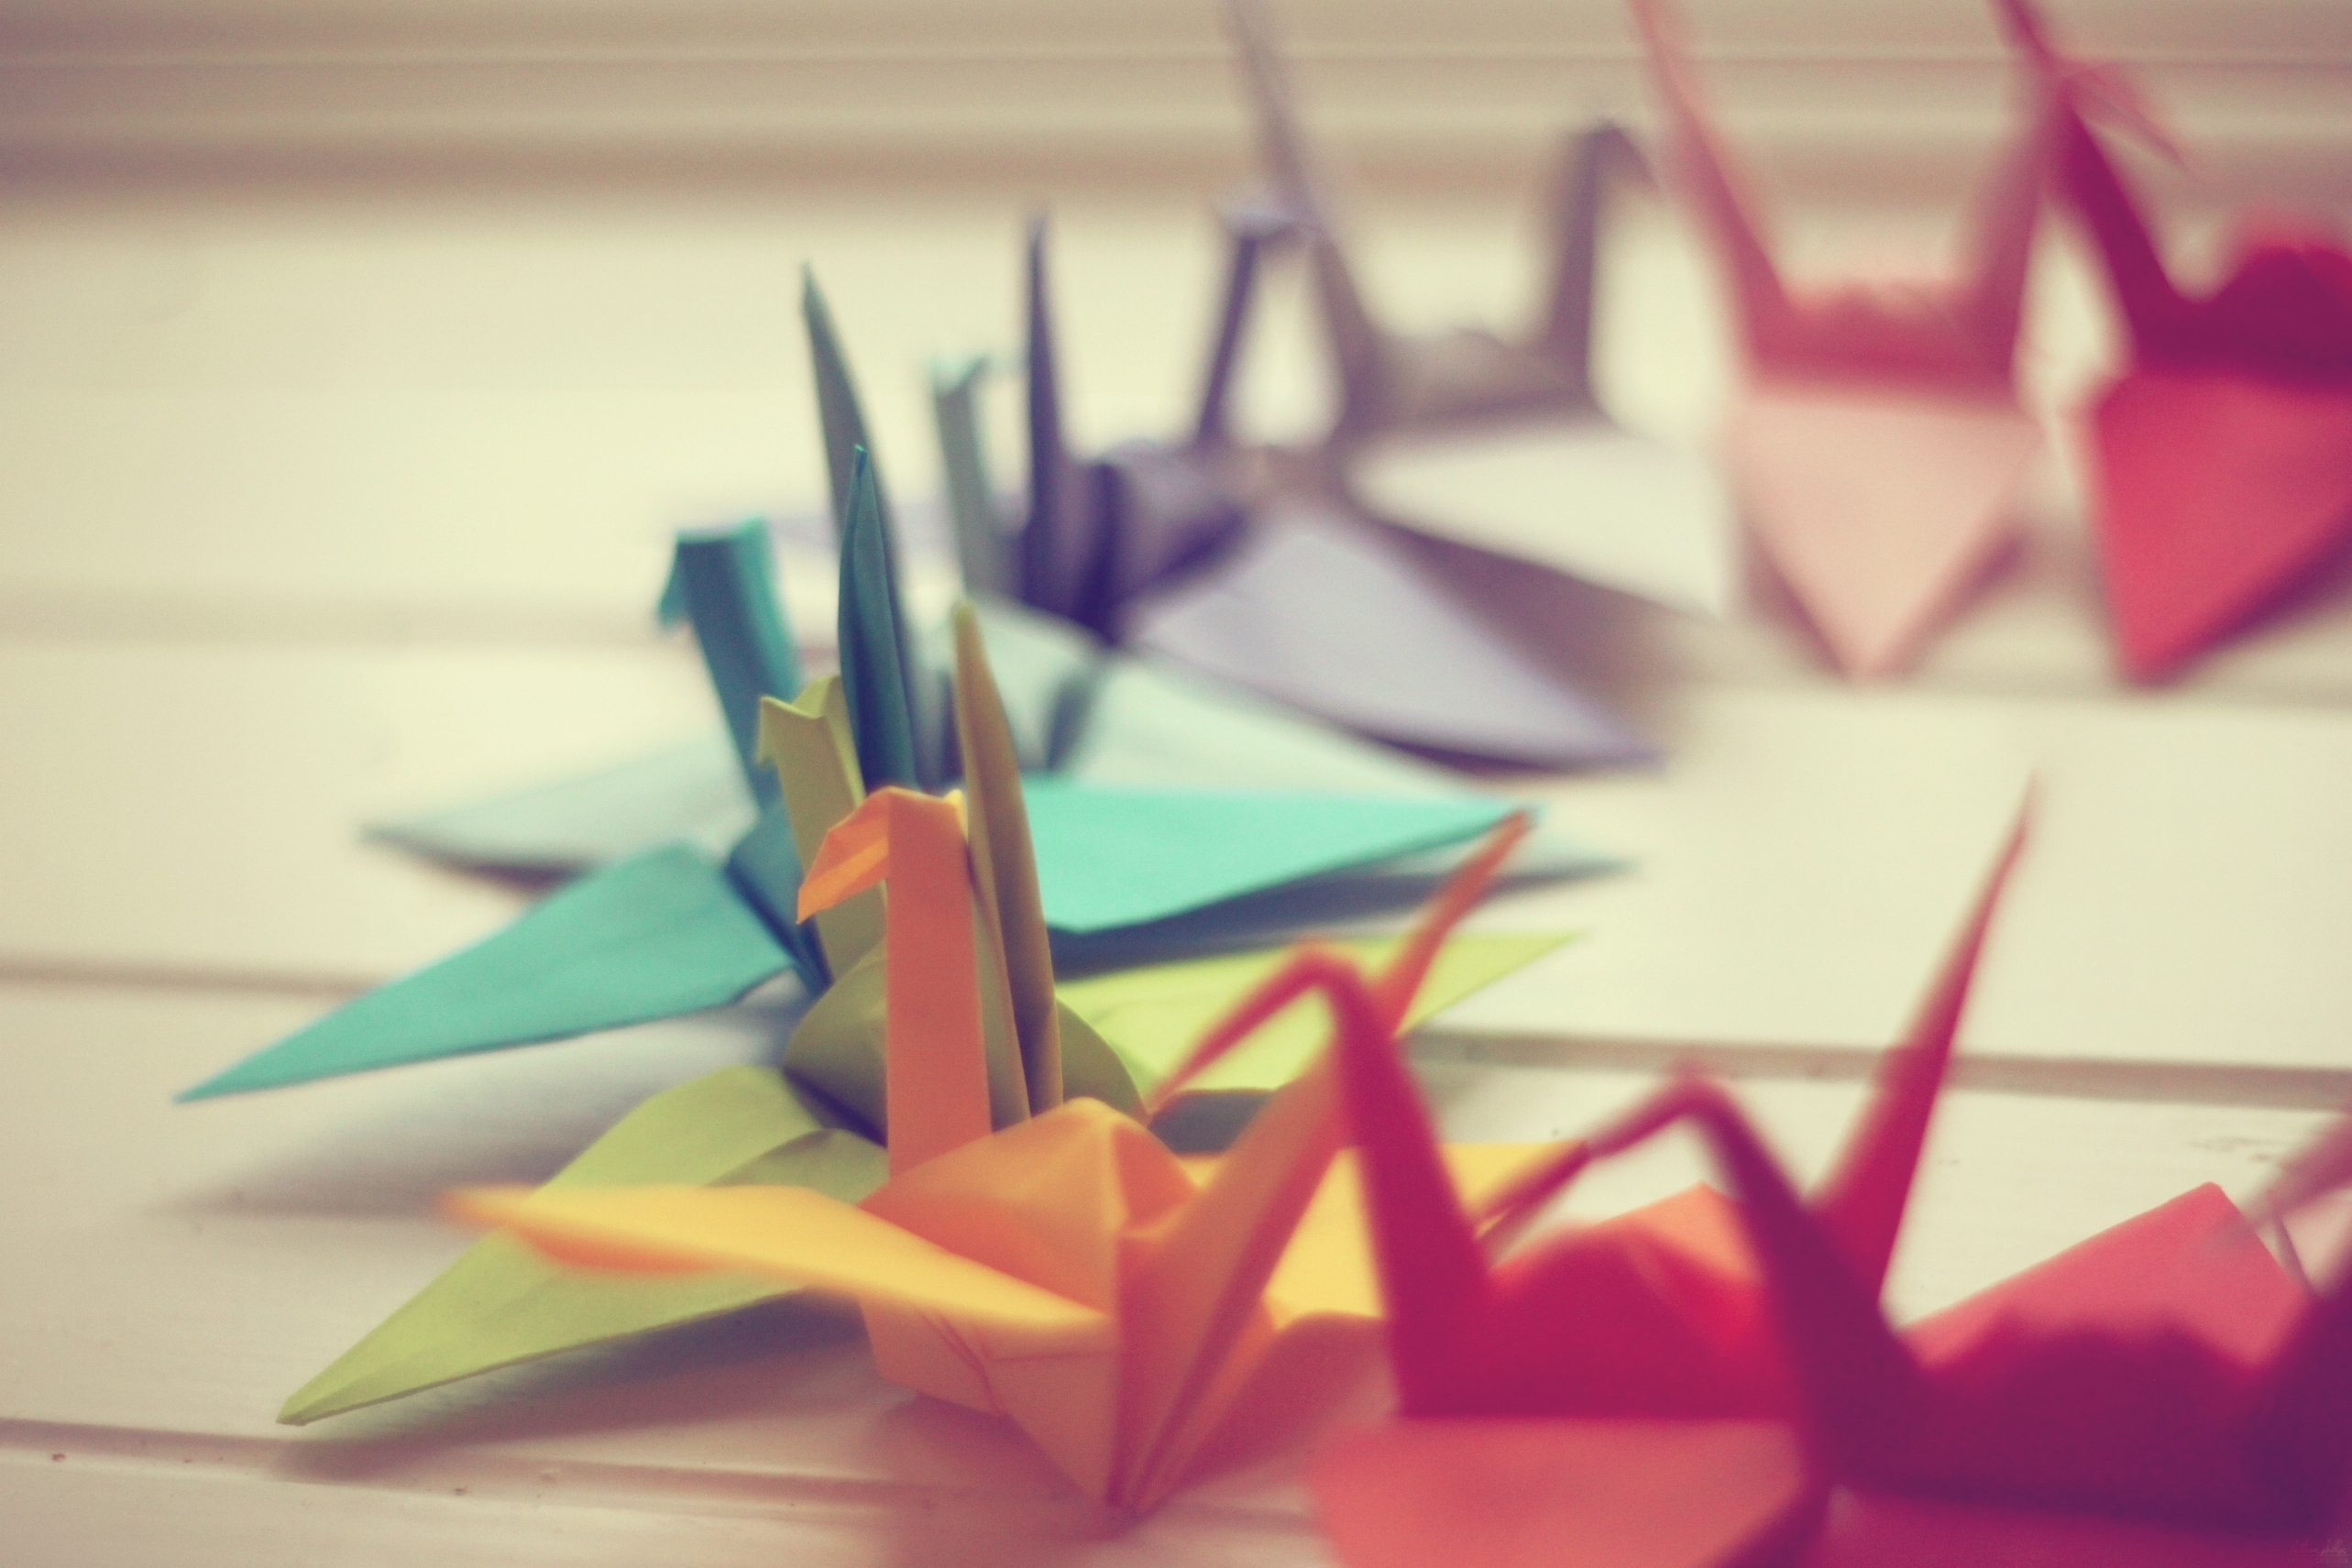 77057 Screensavers and Wallpapers Photo for phone. Download Miscellanea, Miscellaneous, Paper, Cranes, Macro, Origami, Background, Photo pictures for free